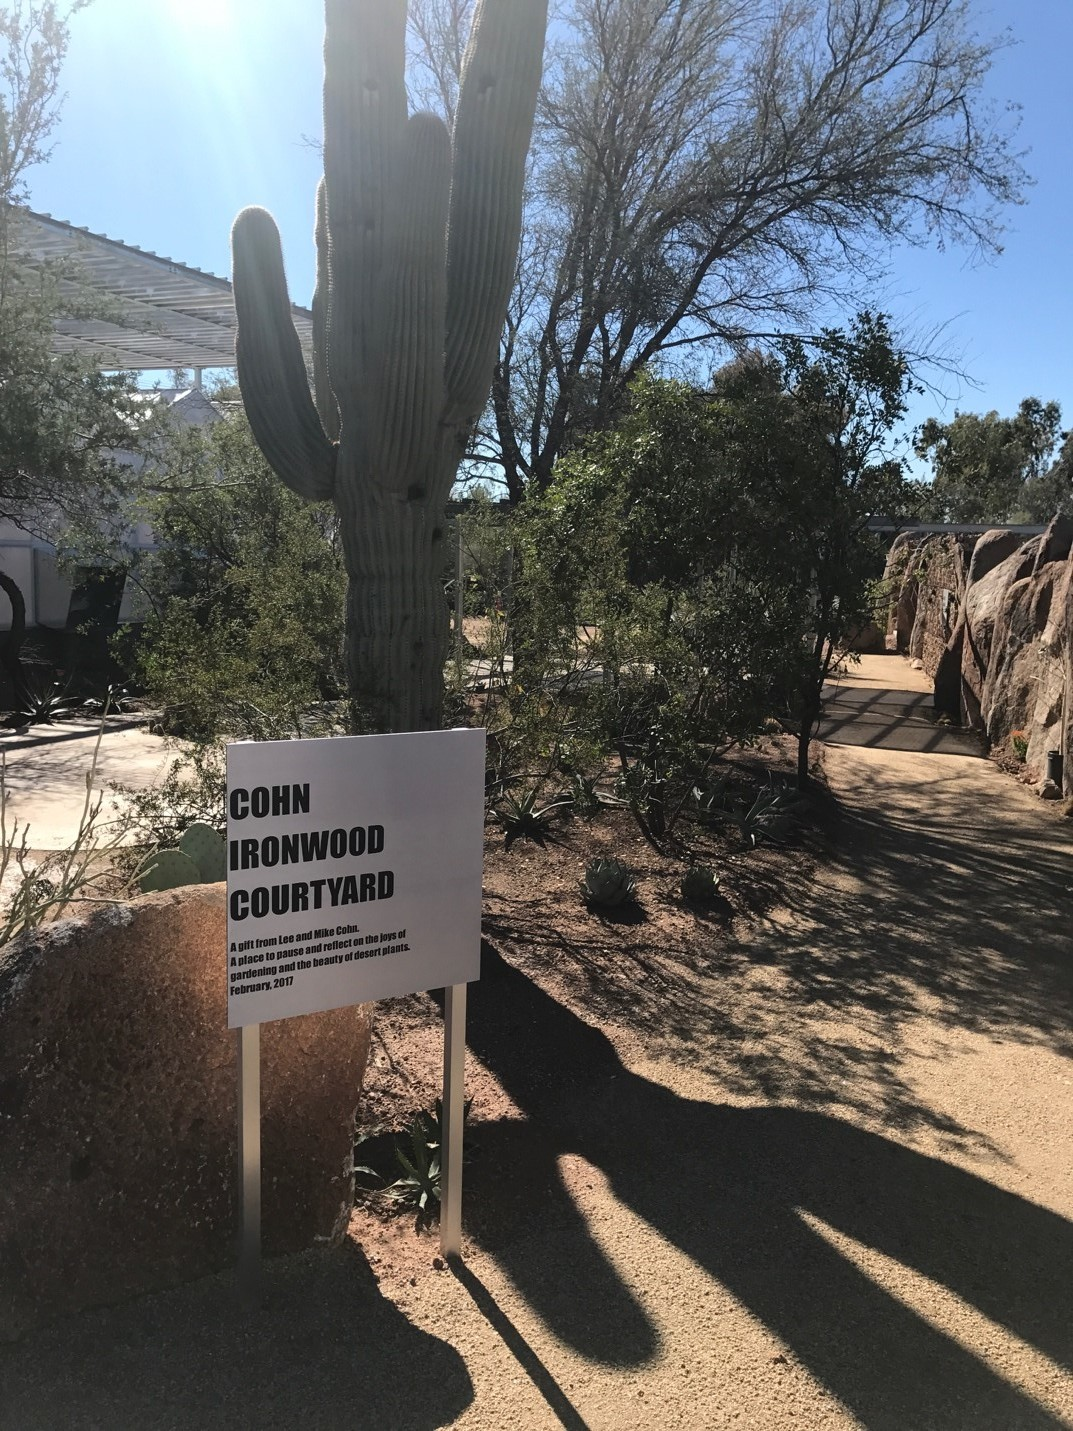 The Cohn Ironwood Courtyard allows staff and volunteers to enjoy some peace-and-quiet in the beautiful AZ outdoors.